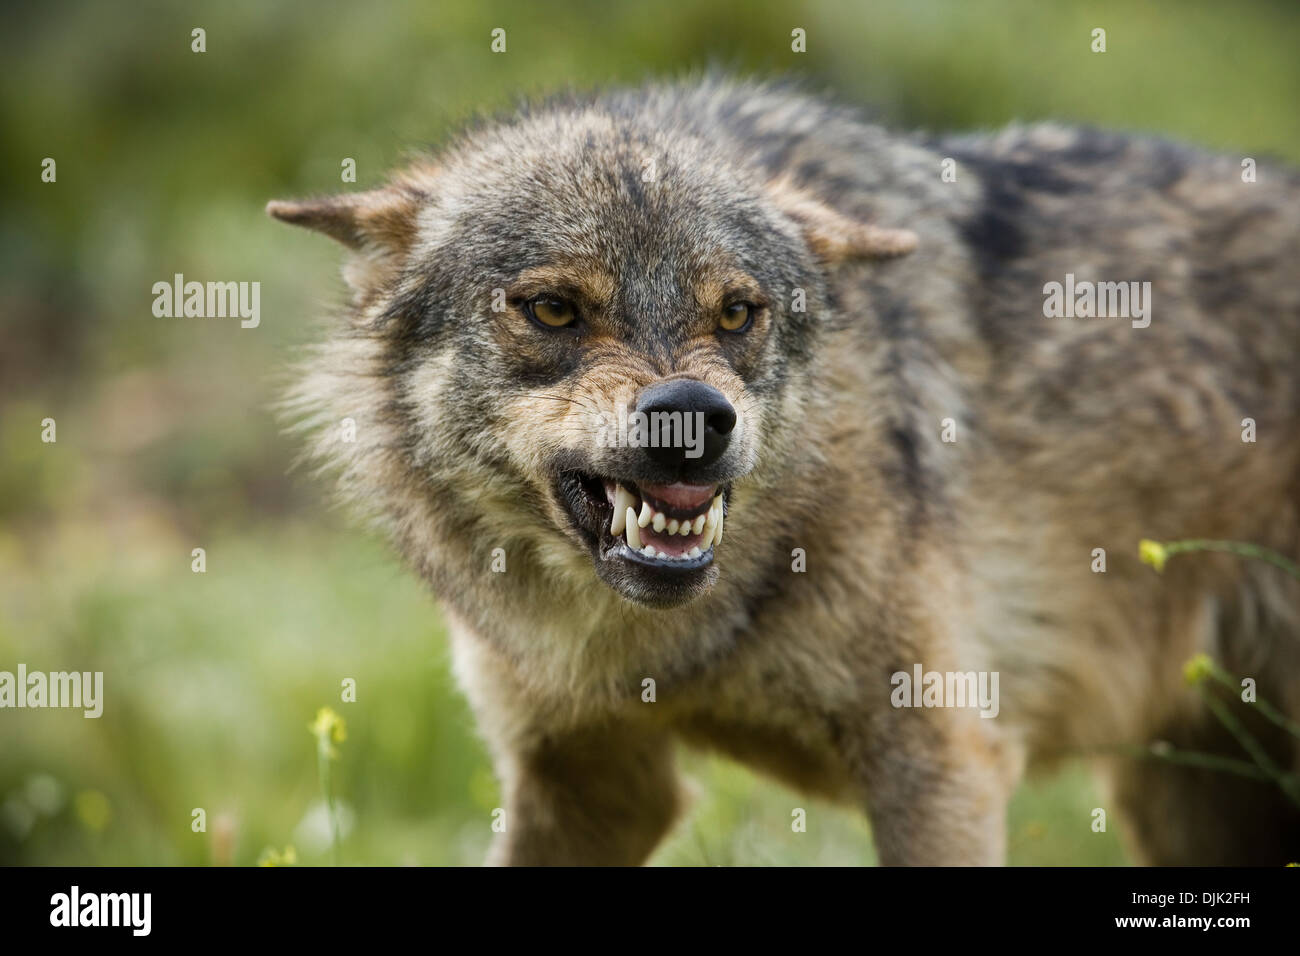 A wolf with an expression of aggression to other components. Wolf park, Antequera, Malaga, Andalusia, Spain - Stock Image